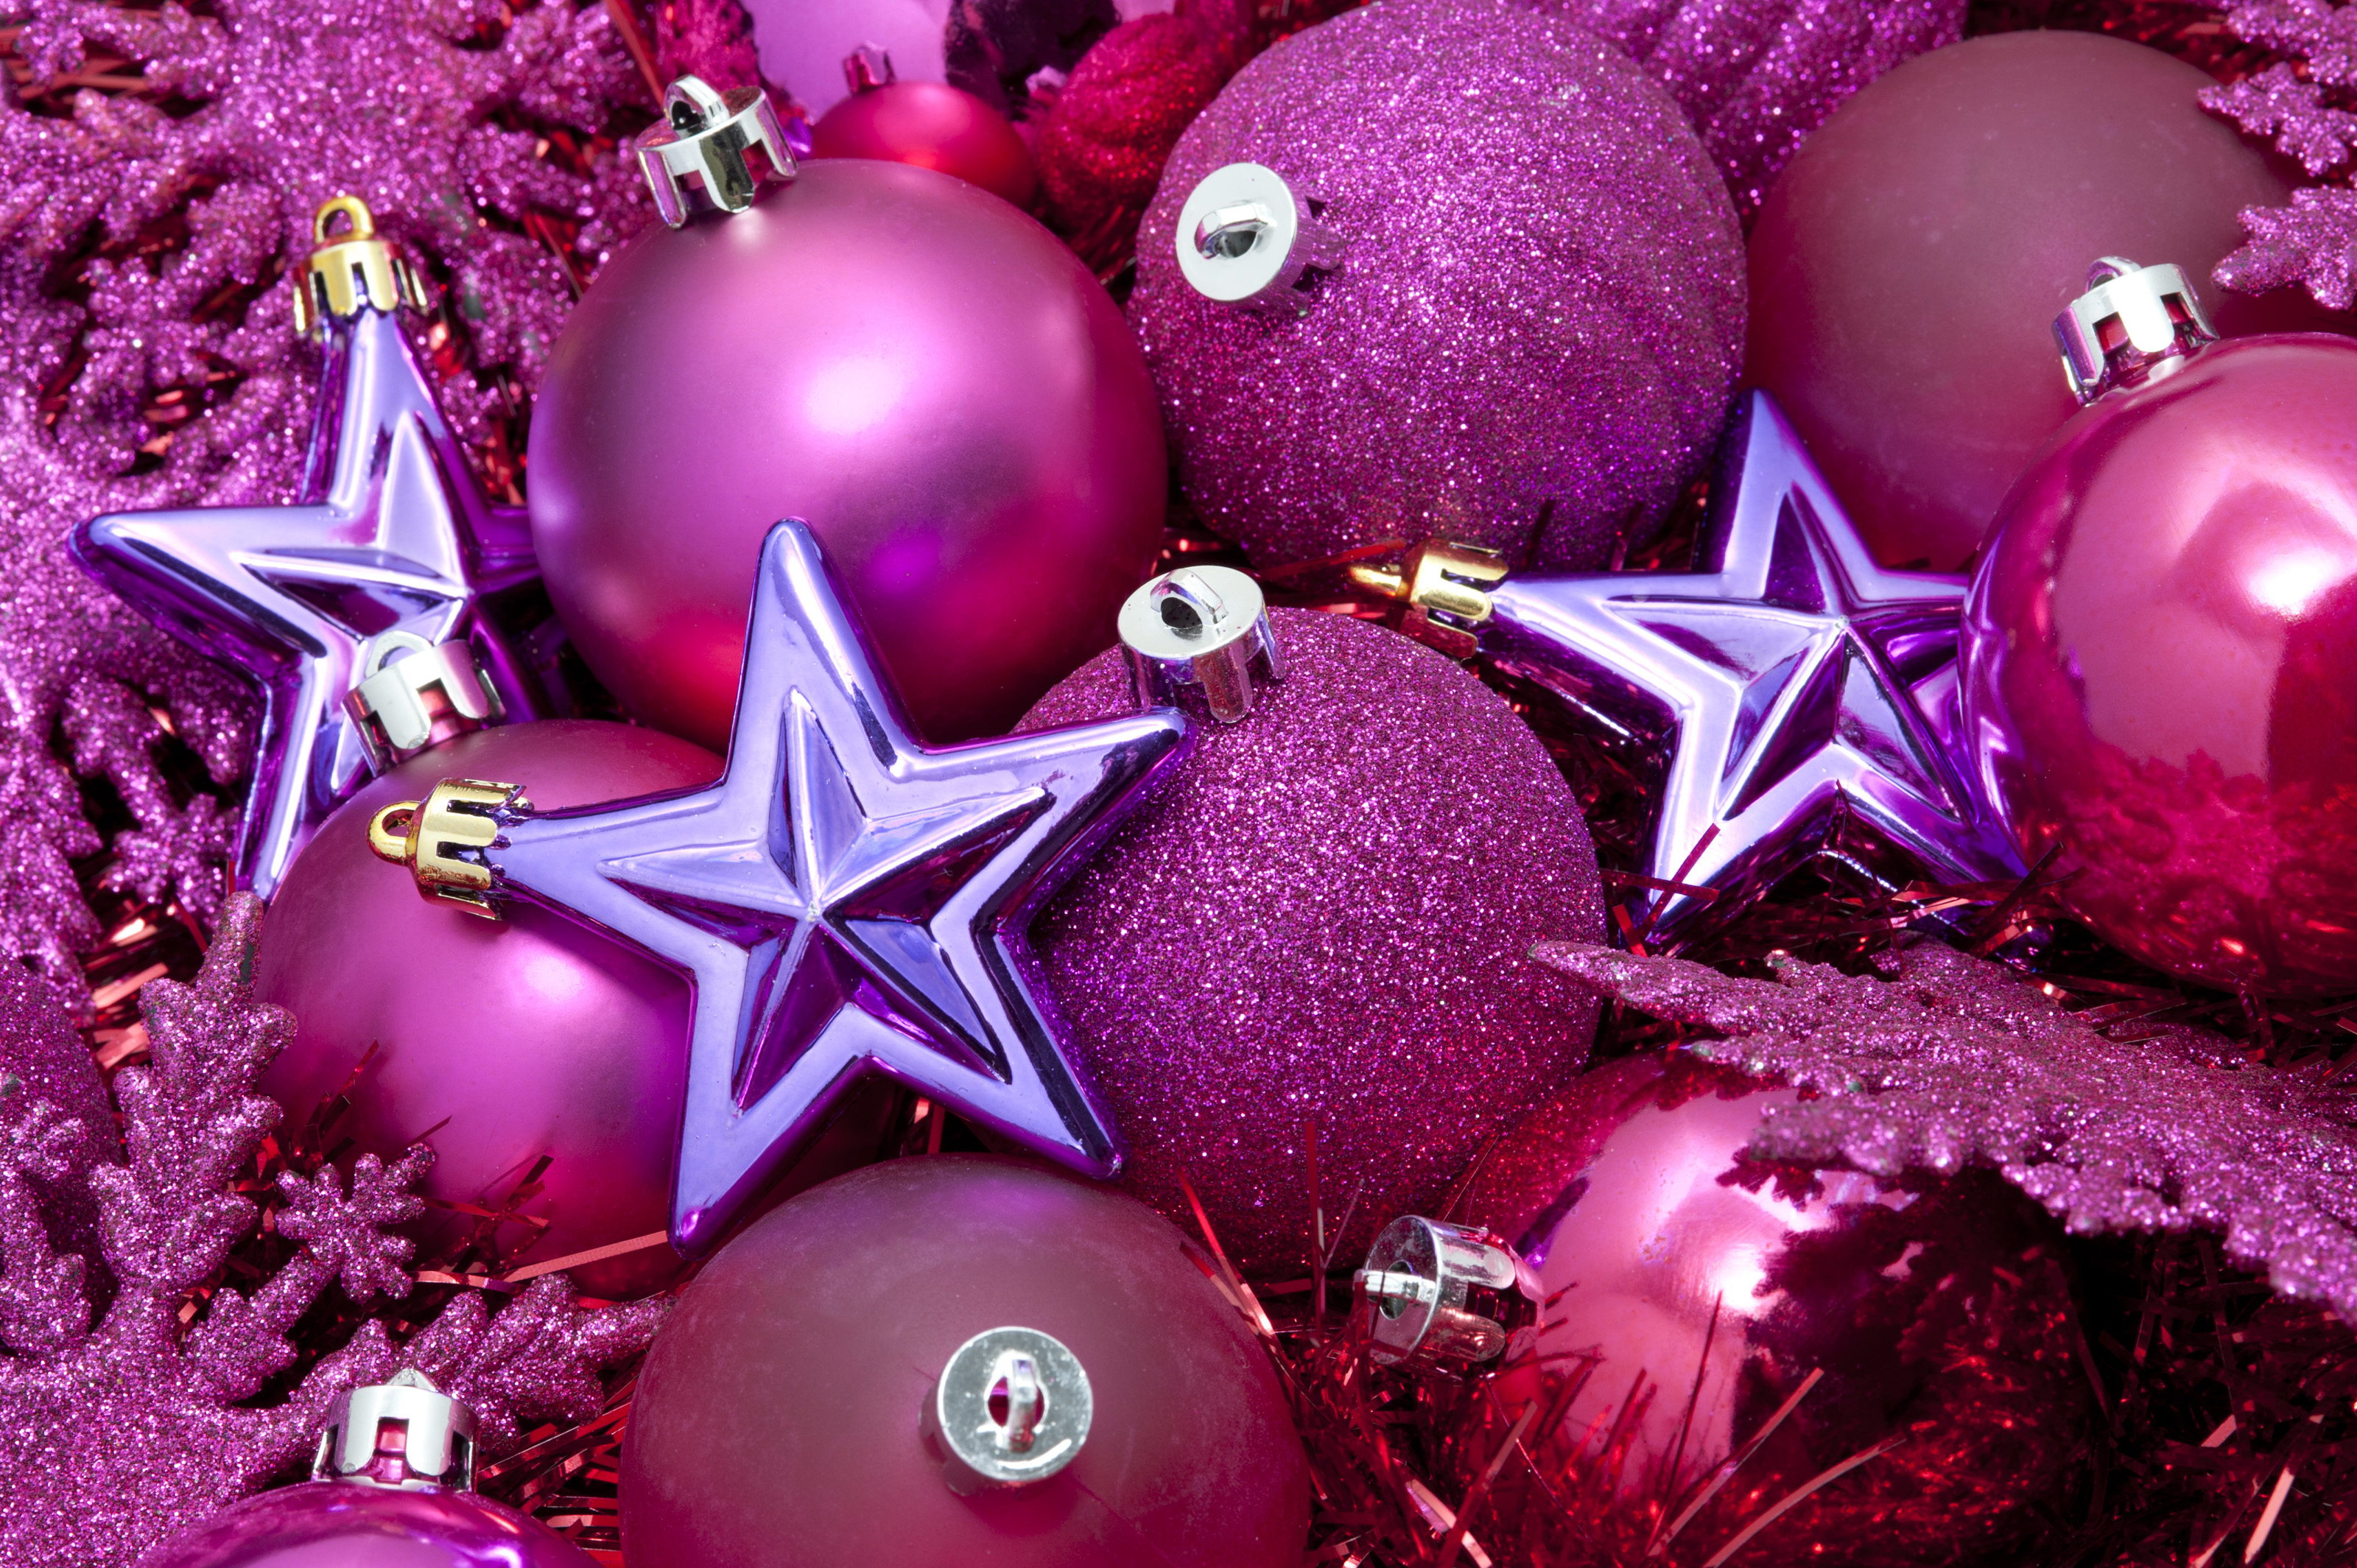 Free stock photo 6824 pink and purple christmas freeimageslive seasonal background with a collection of pink christmas bauble decorations and tinsel topped with purple stars junglespirit